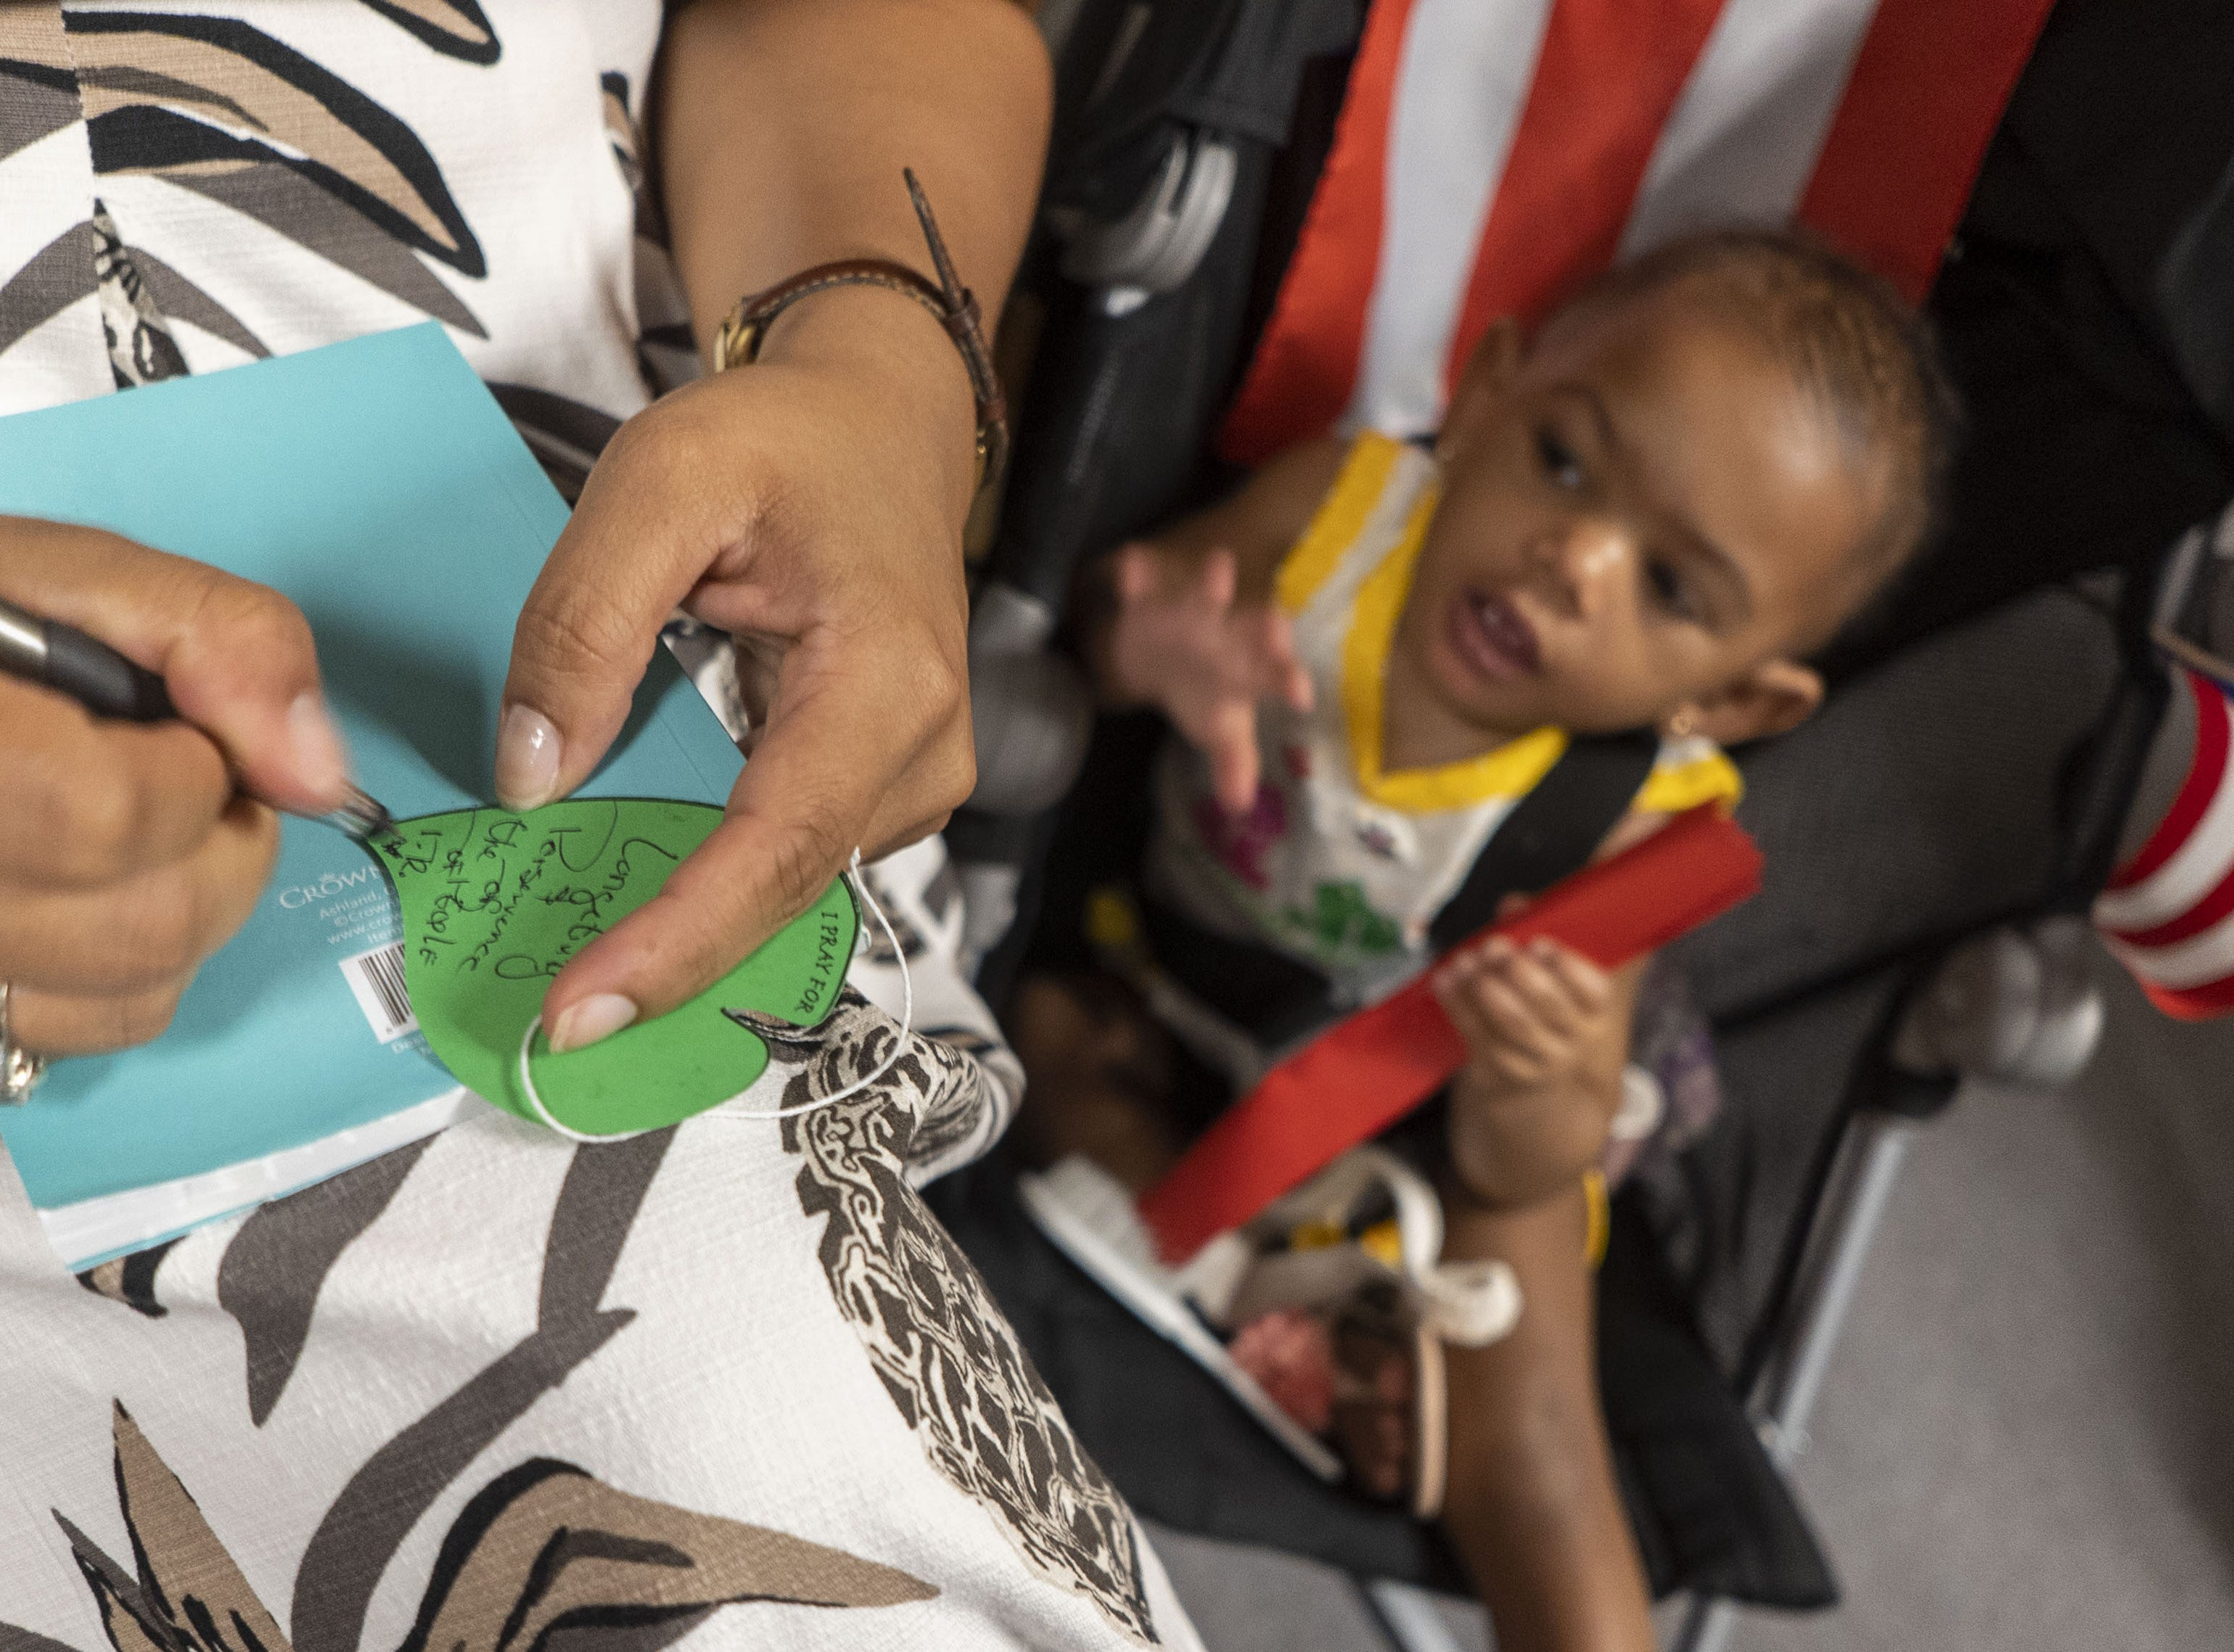 A woman writes a note on a piece of green paper shaped like a leaf to place on a prayer tree during a service commemorating the one-year anniversary of Hurricane Maria. The hurricane-force winds  stripped trees bare turning the green island brown, but the leaves are growing back, said Gretchen Patterson, president of the Puerto Rican Center of Arizona.